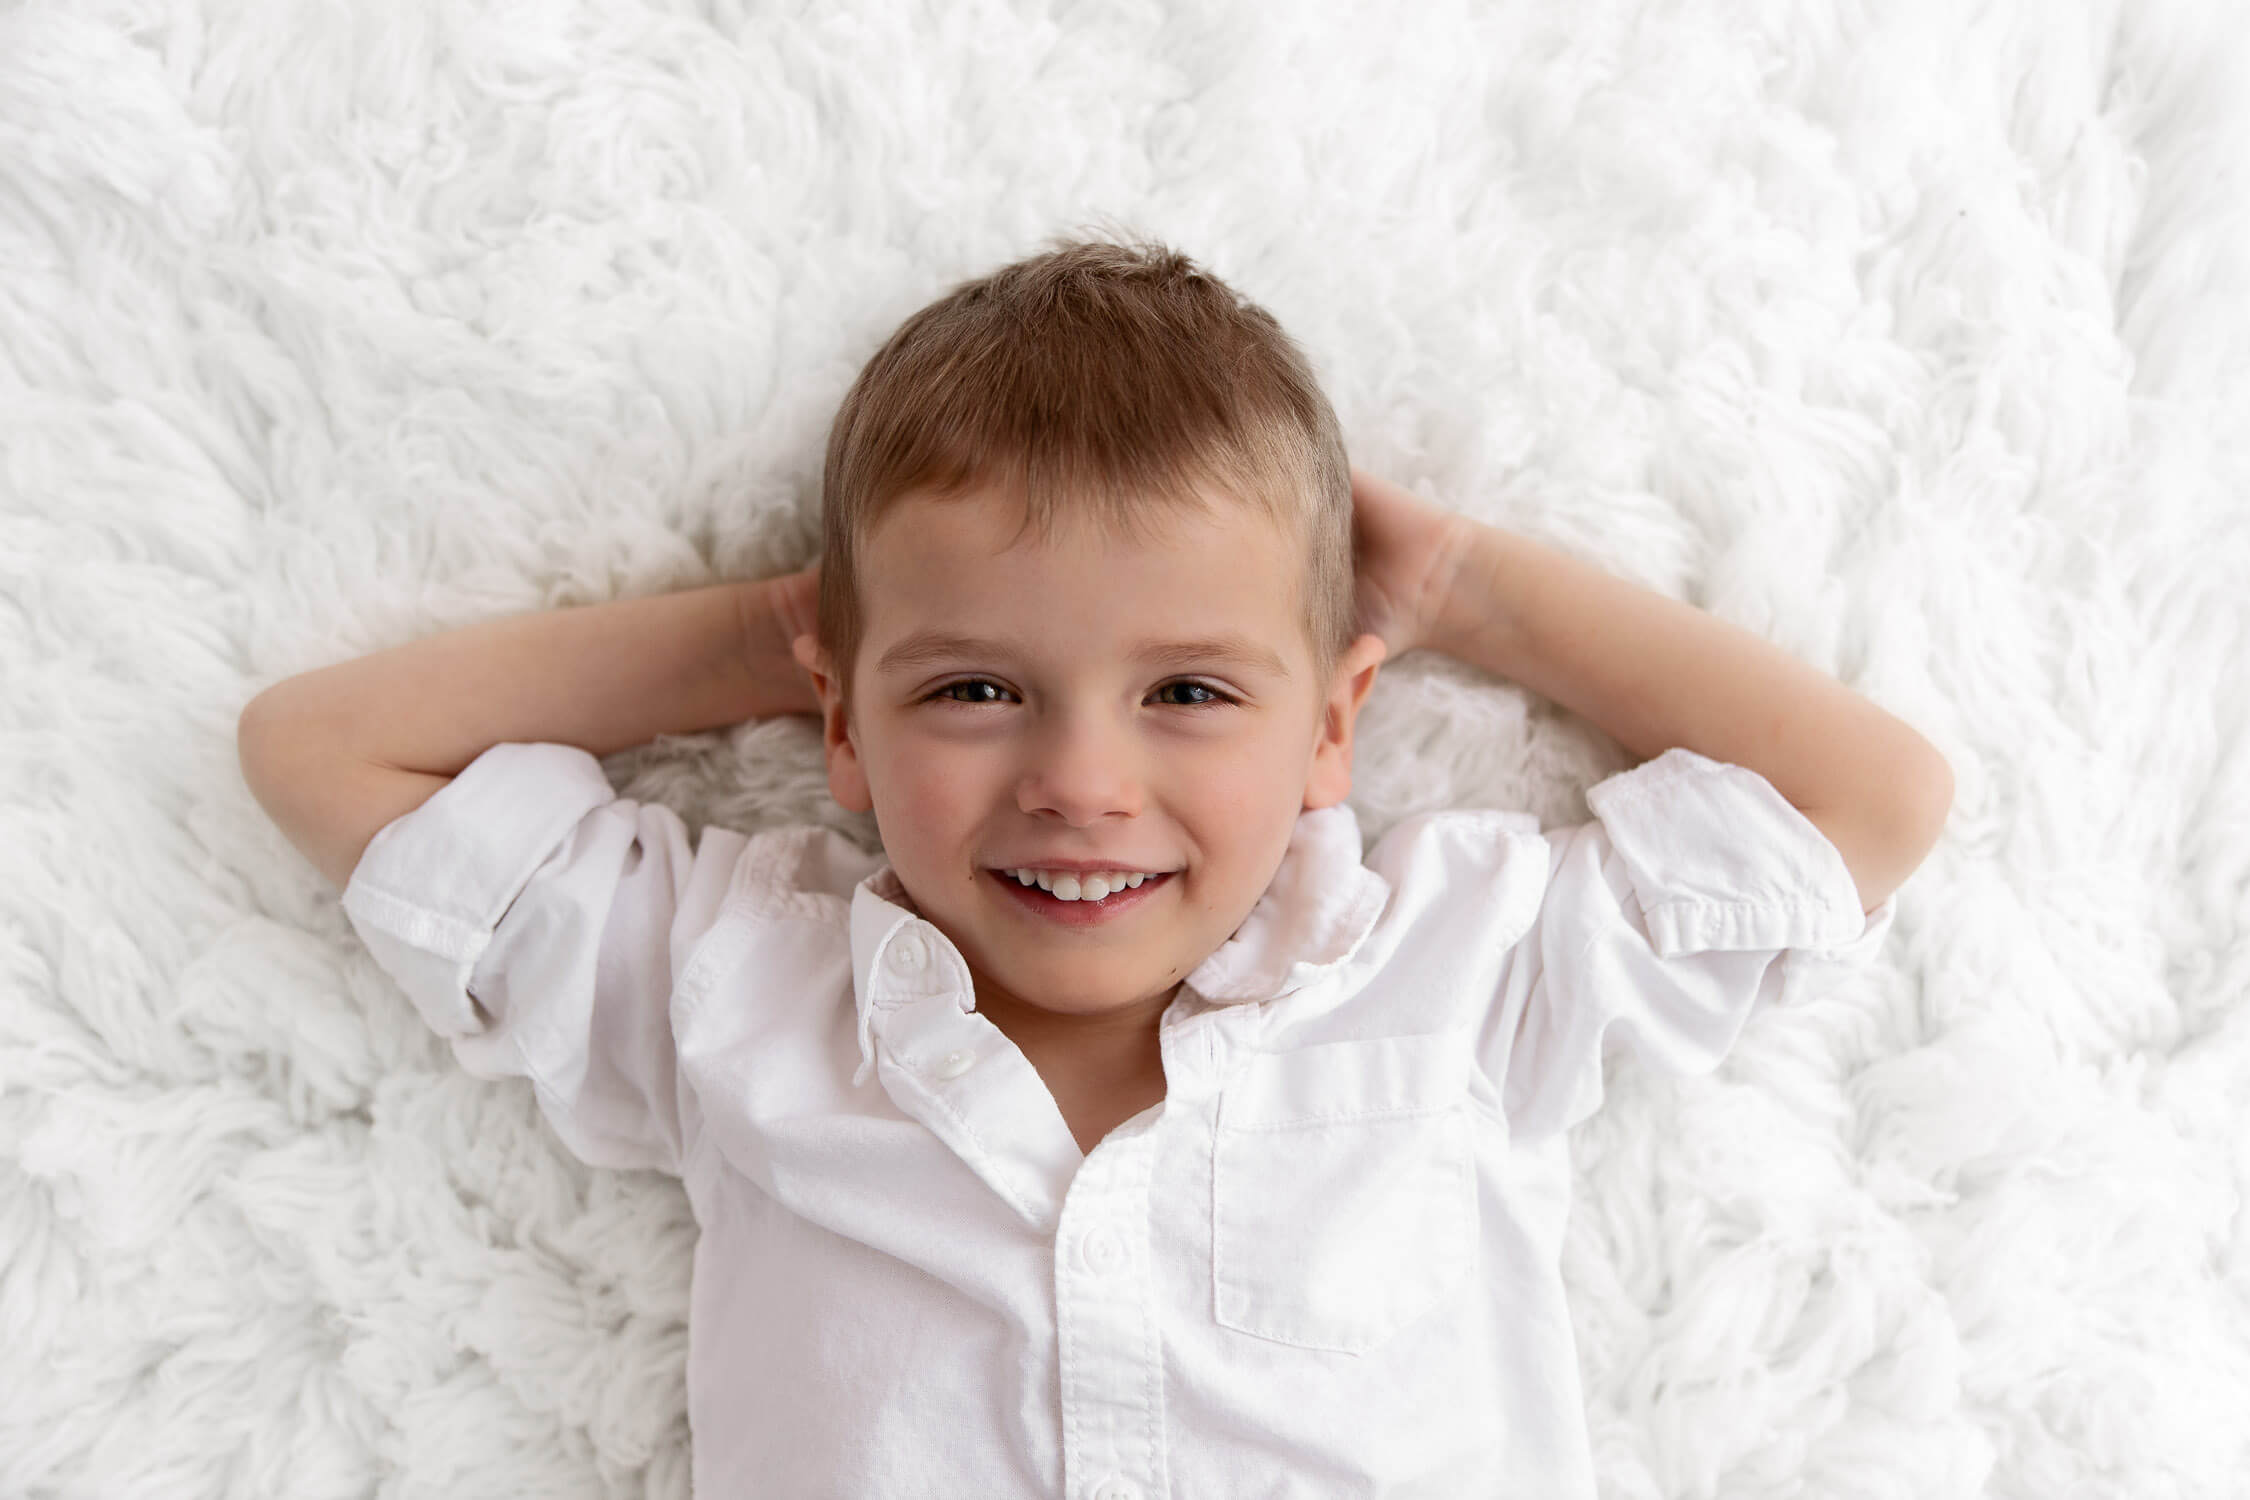 4 year old boy laying on white fur with hands behind head smiling up at camera